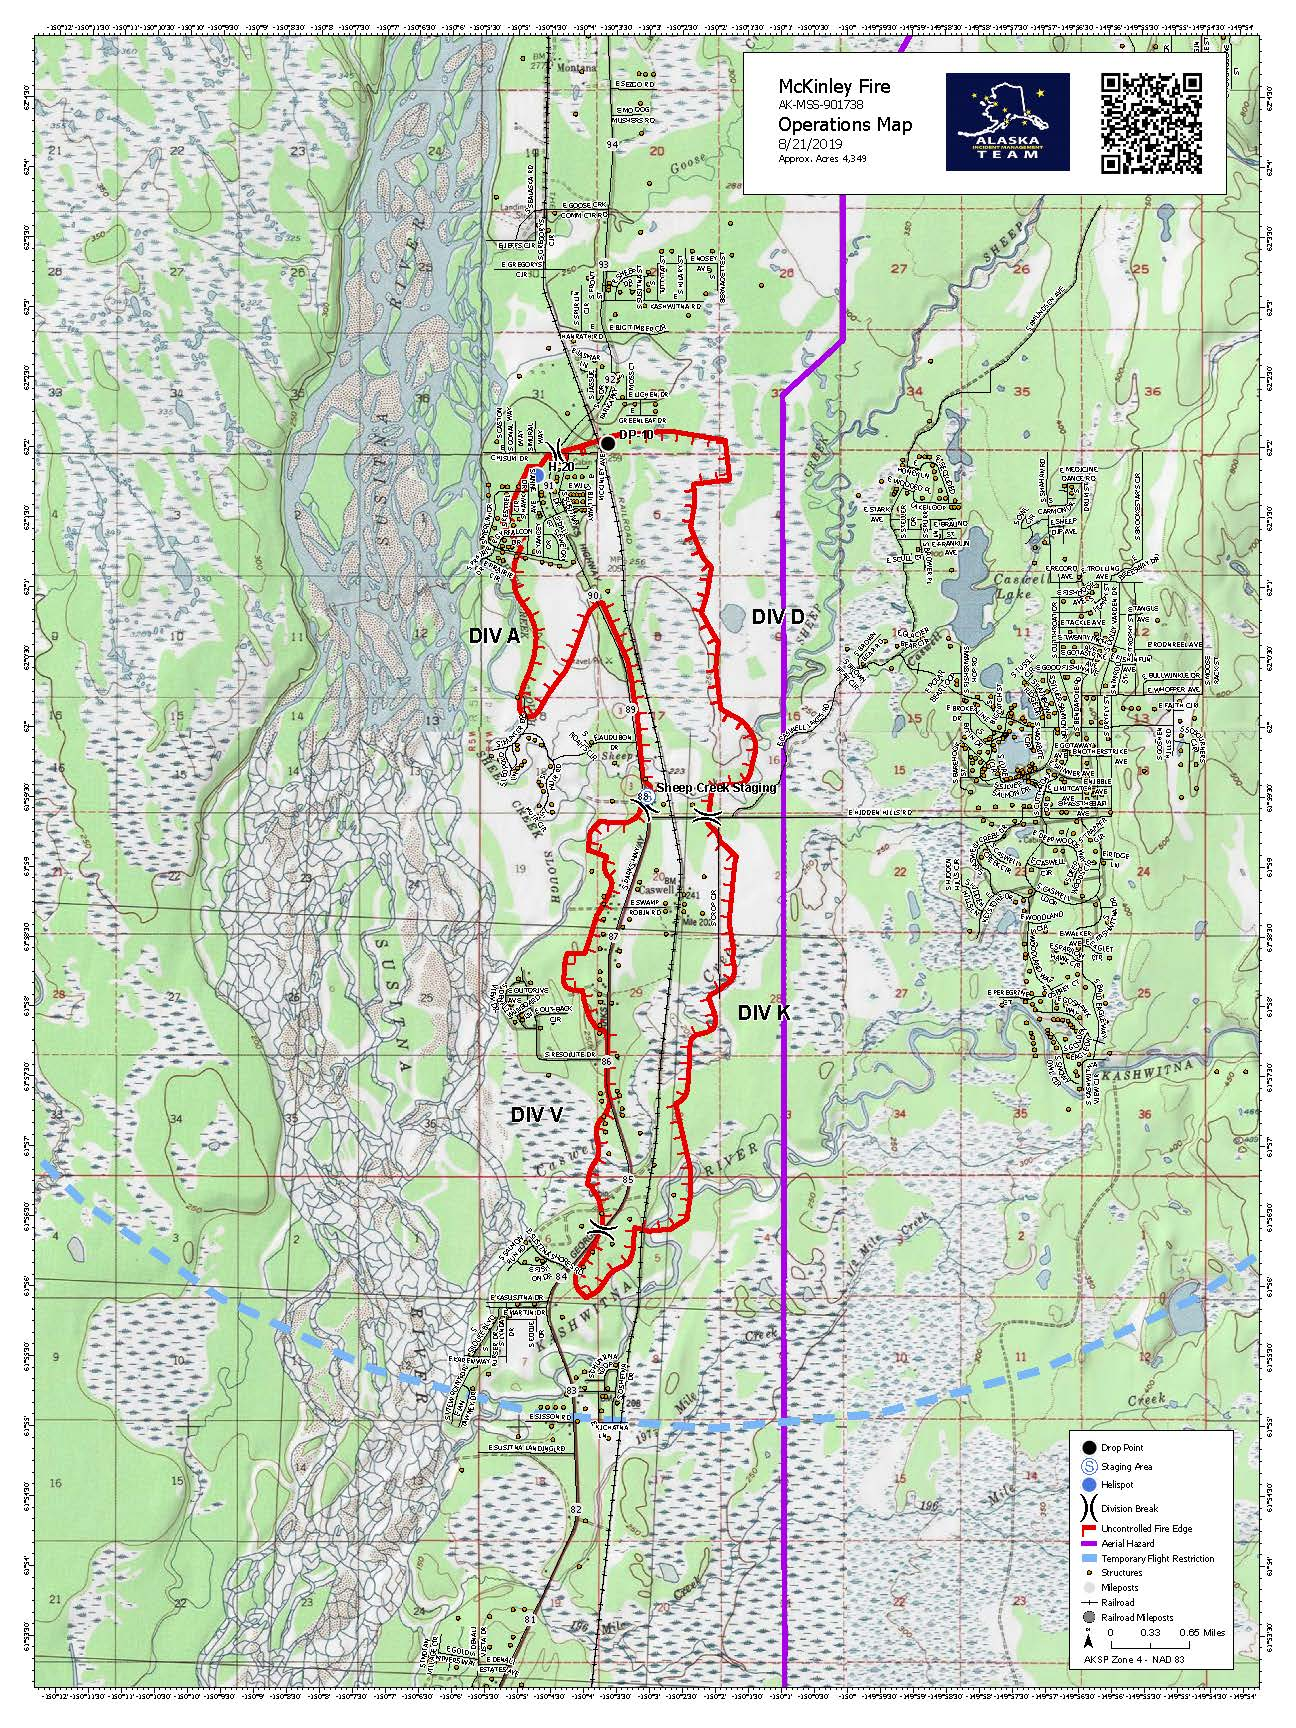 Approximate Fire Perimeter Map for August 21, 2019